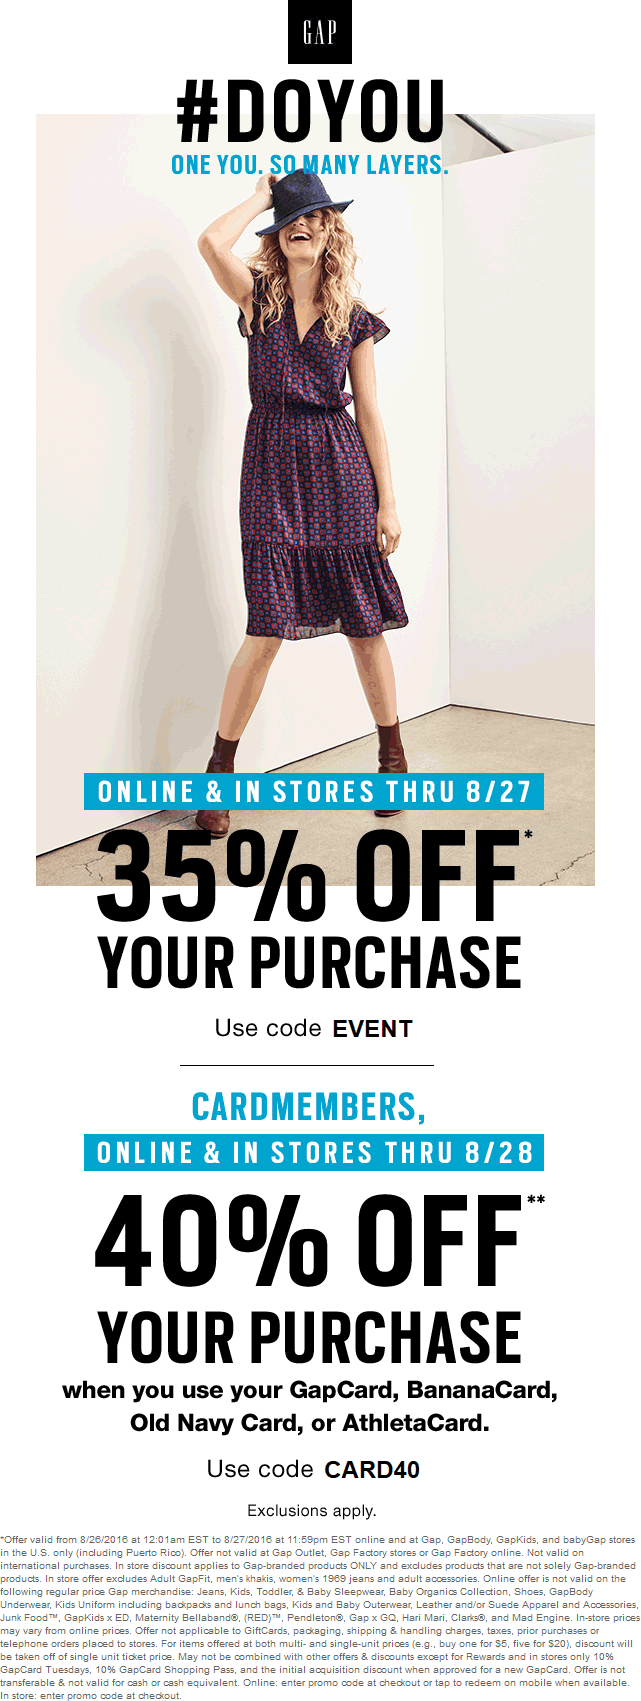 Gap Coupon October 2017 35% off today at Gap, or online via promo code EVENT